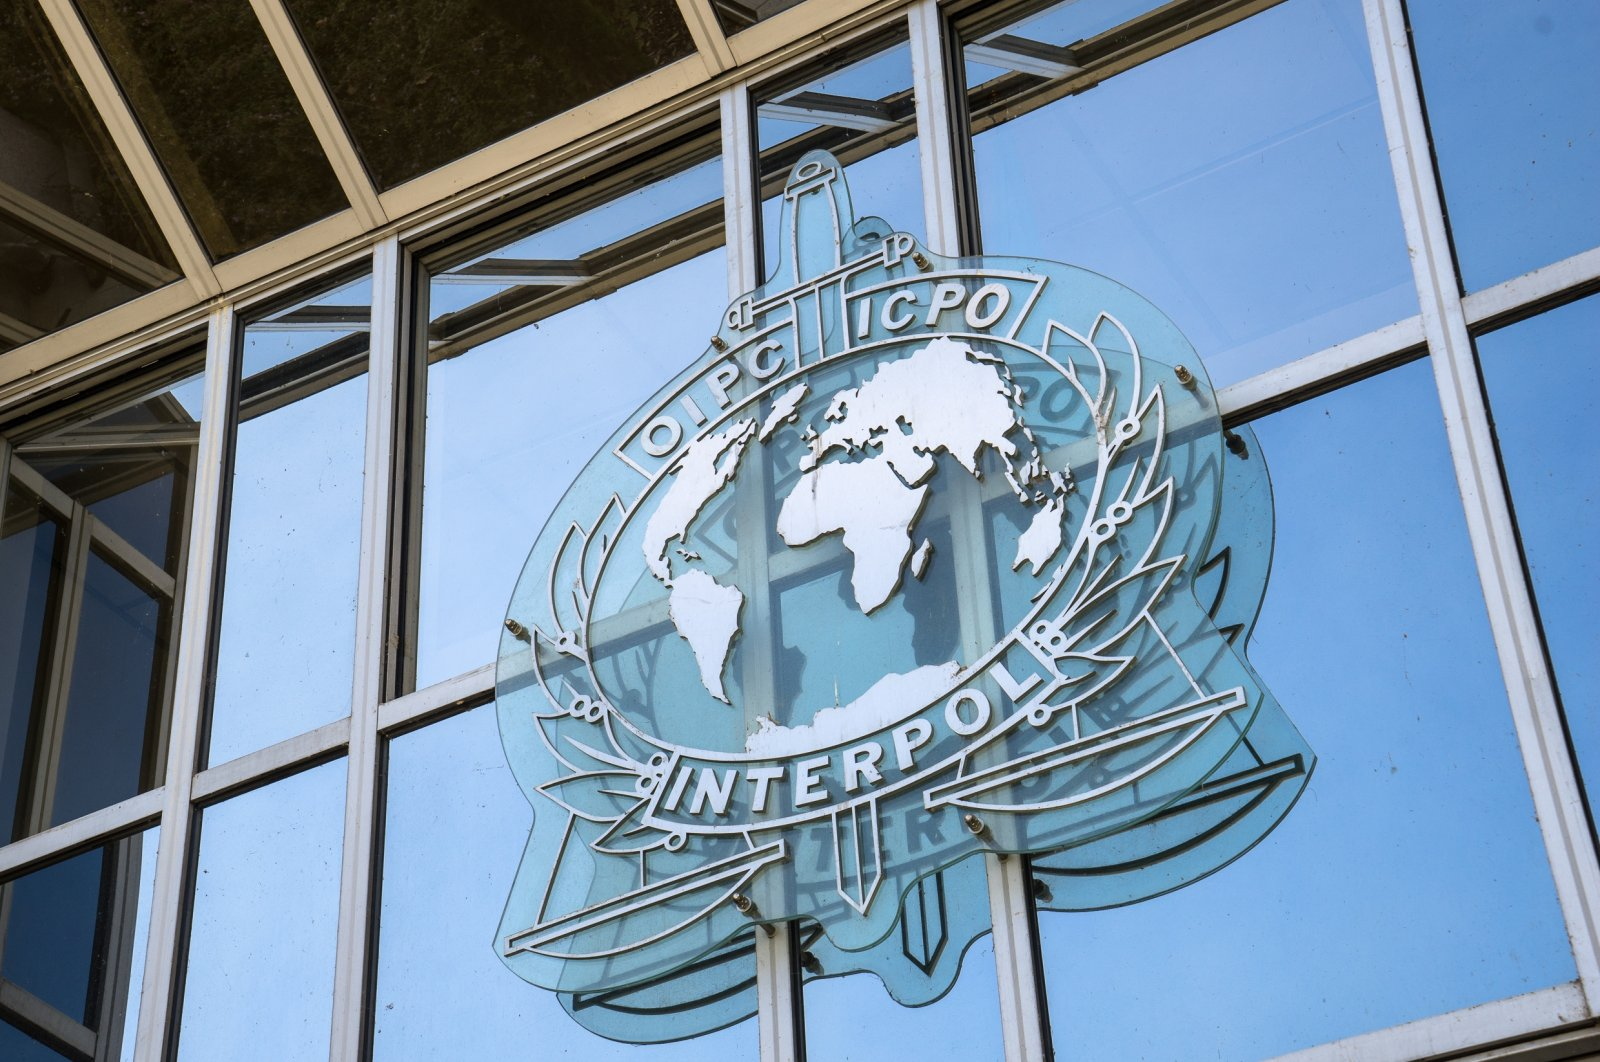 A sign on the facade of the Interpol headquarters. Interpol is an intergovernmental organization facilitating international police cooperation, Lyon, France, Sep. 21, 2015. (Shutterstock.com)